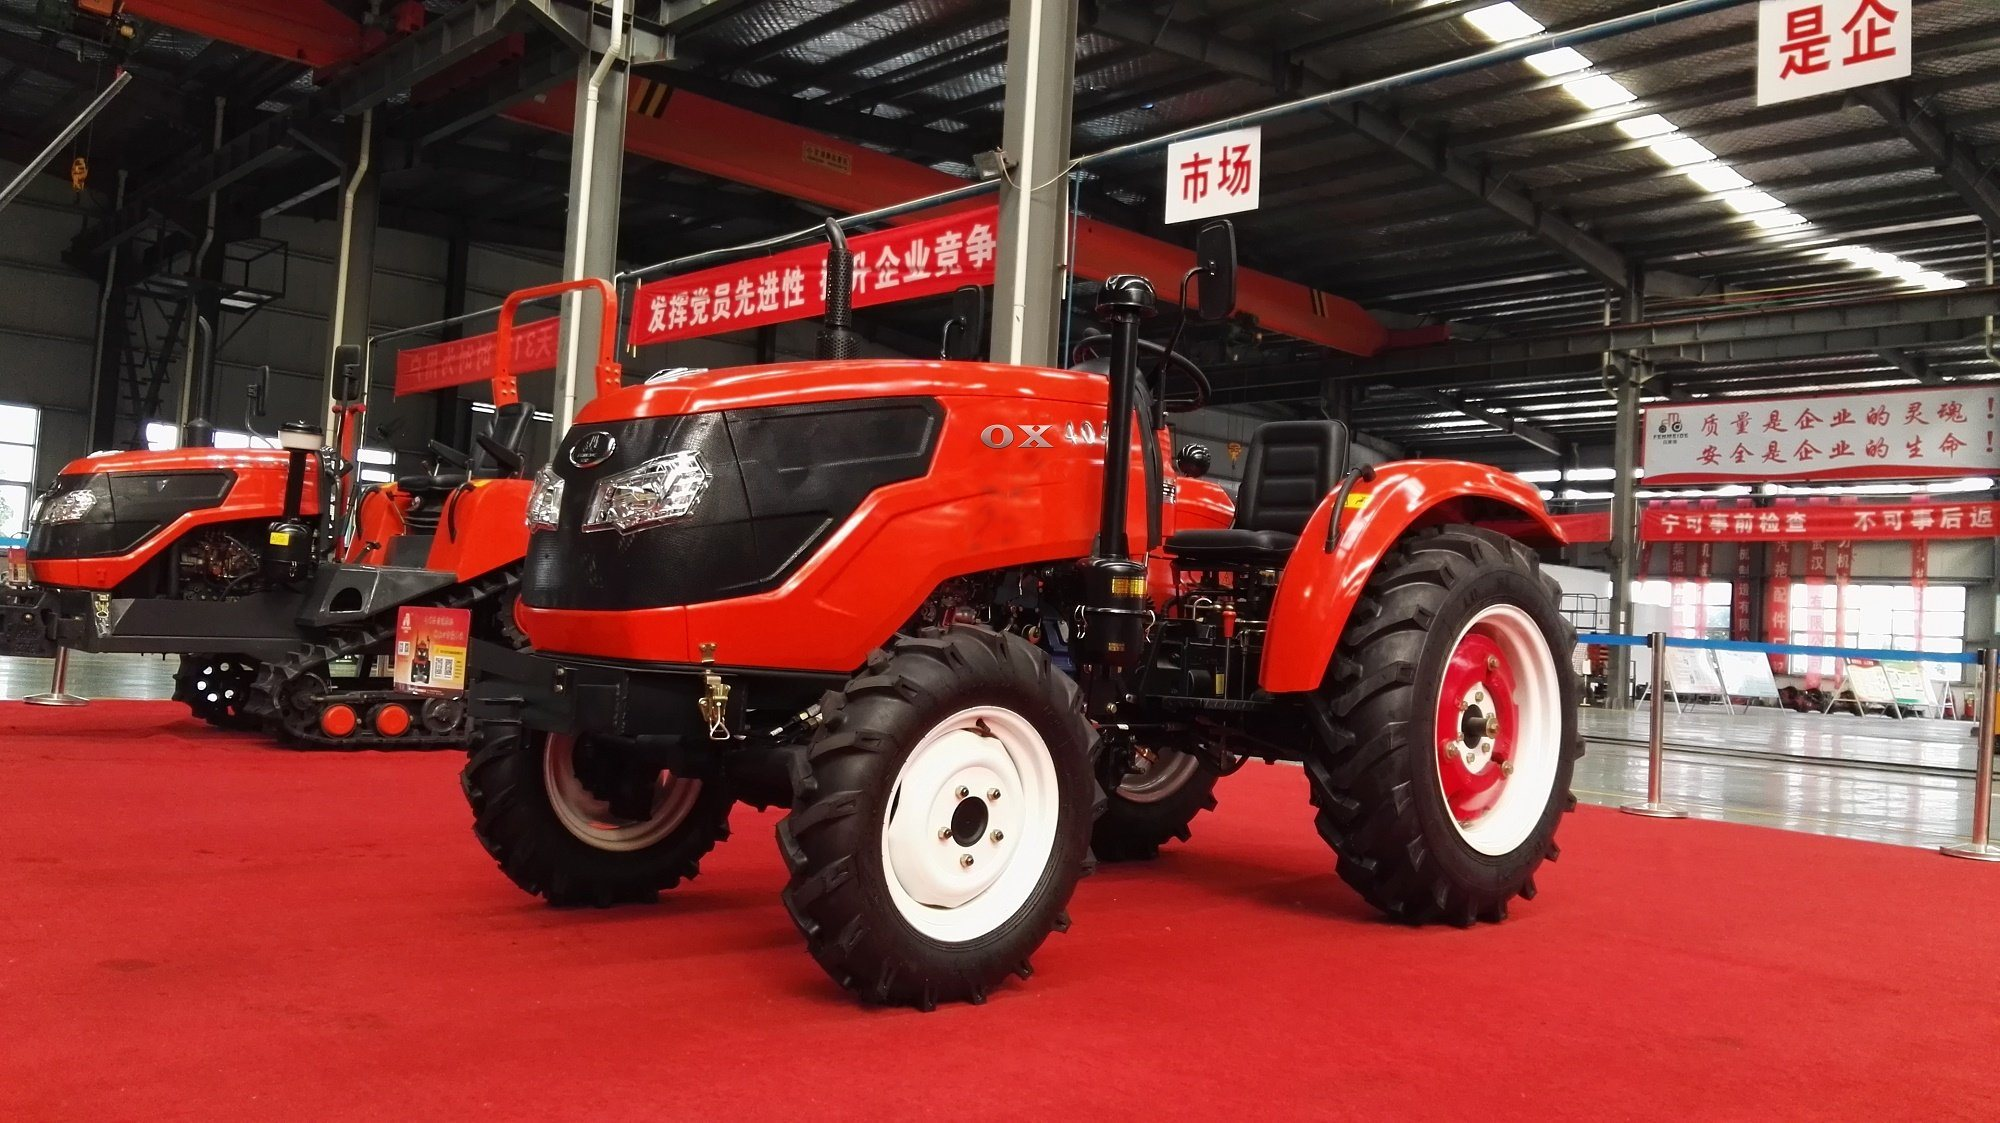 New 404 Four-Wheel Driving Wheel Tractor with Diesel Engine Kubota Type